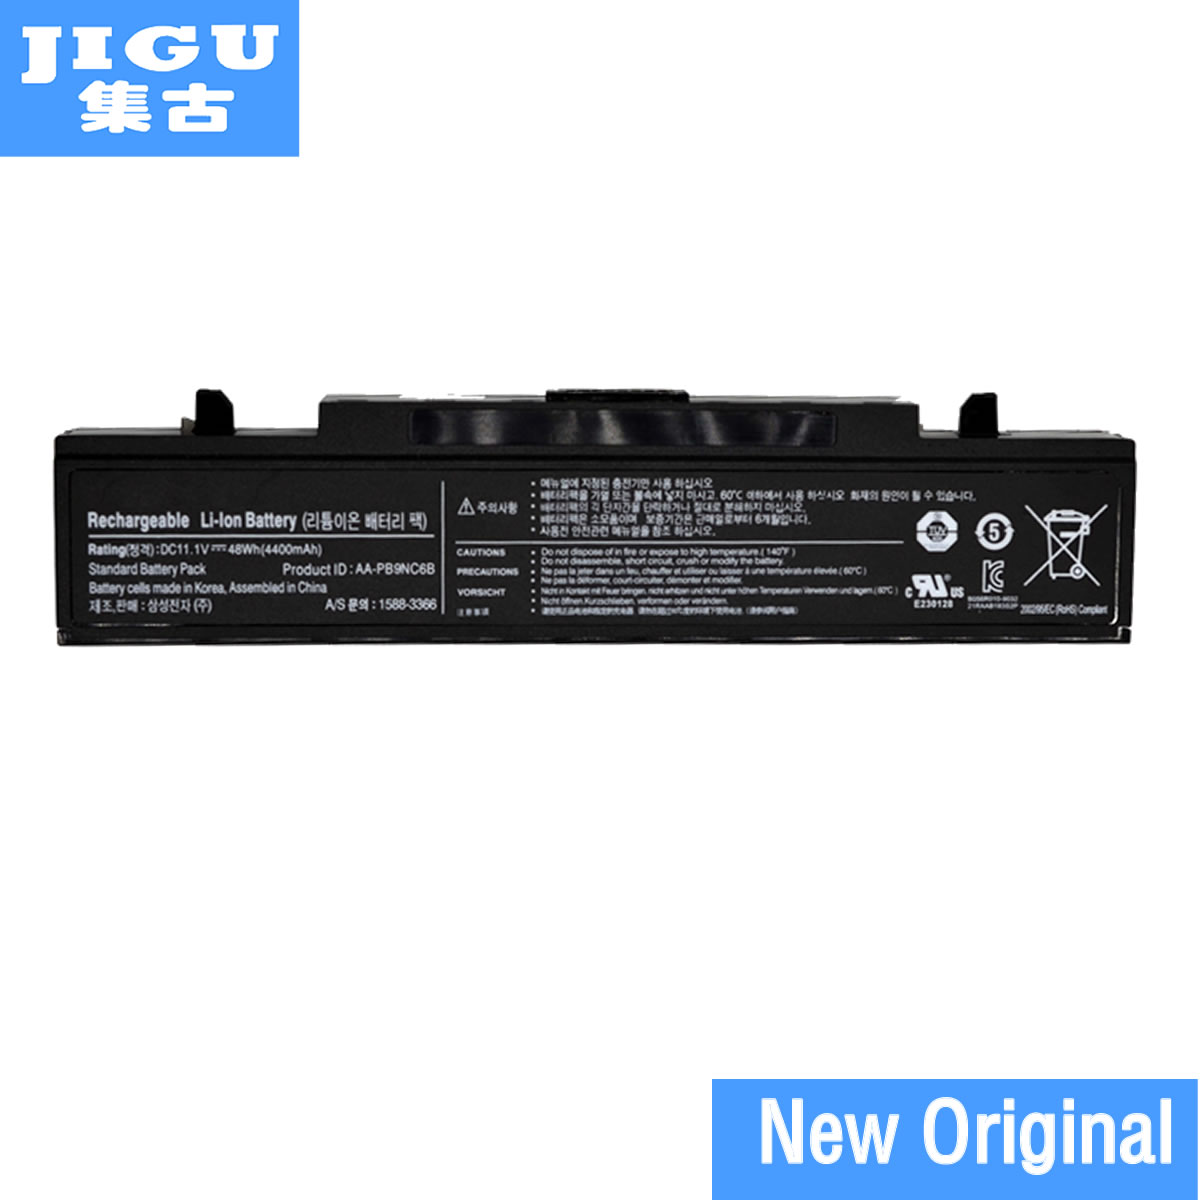 JIGU Original Laptop <font><b>Battery</b></font> For <font><b>SAMSUNG</b></font> R718 R720 R728 R730 R780 RC410 <font><b>RC510</b></font> RC512 RC710 RC730 RF410 RF411 RF510 RF511 image